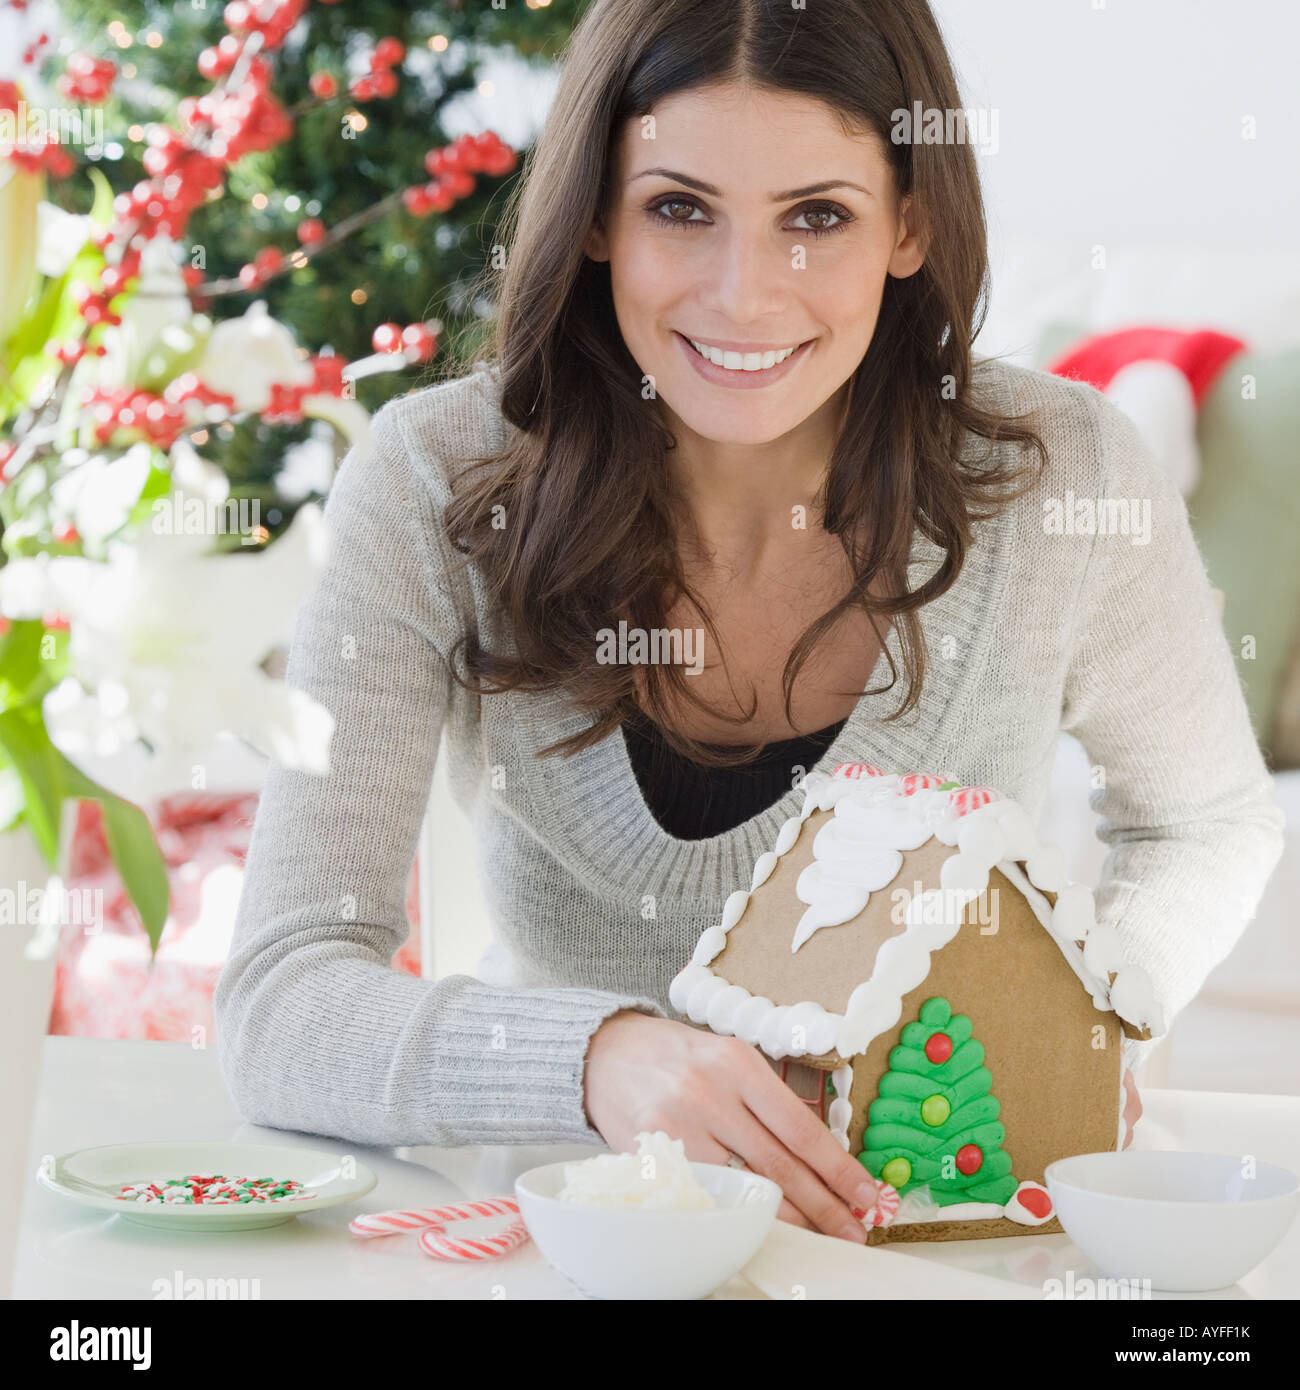 Woman making gingerbread house - Stock Image